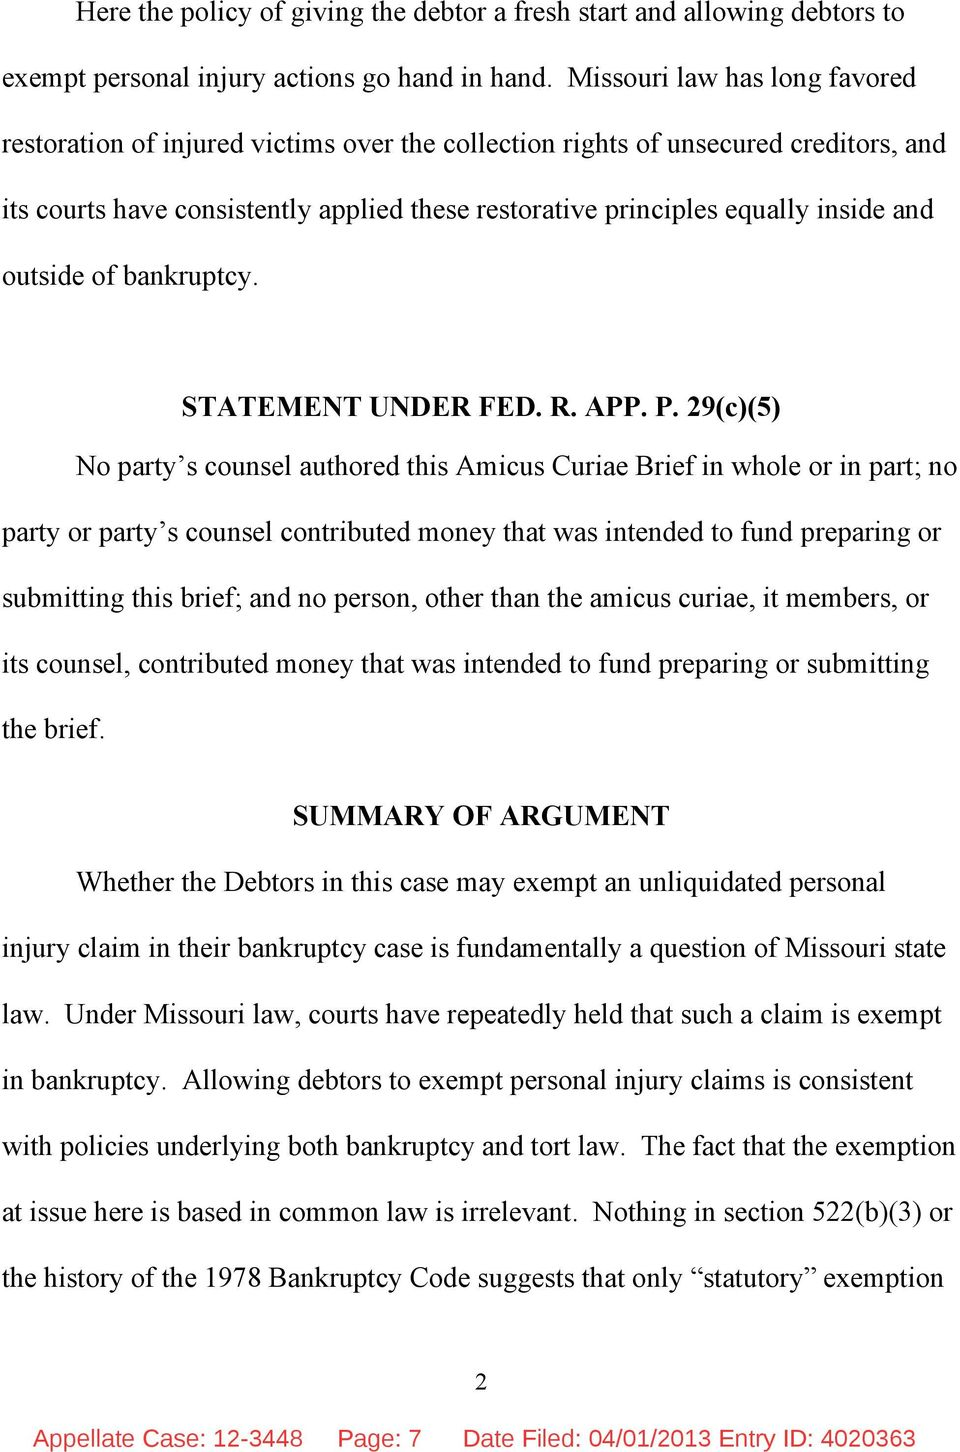 and outside of bankruptcy. STATEMENT UNDER FED. R. APP. P.